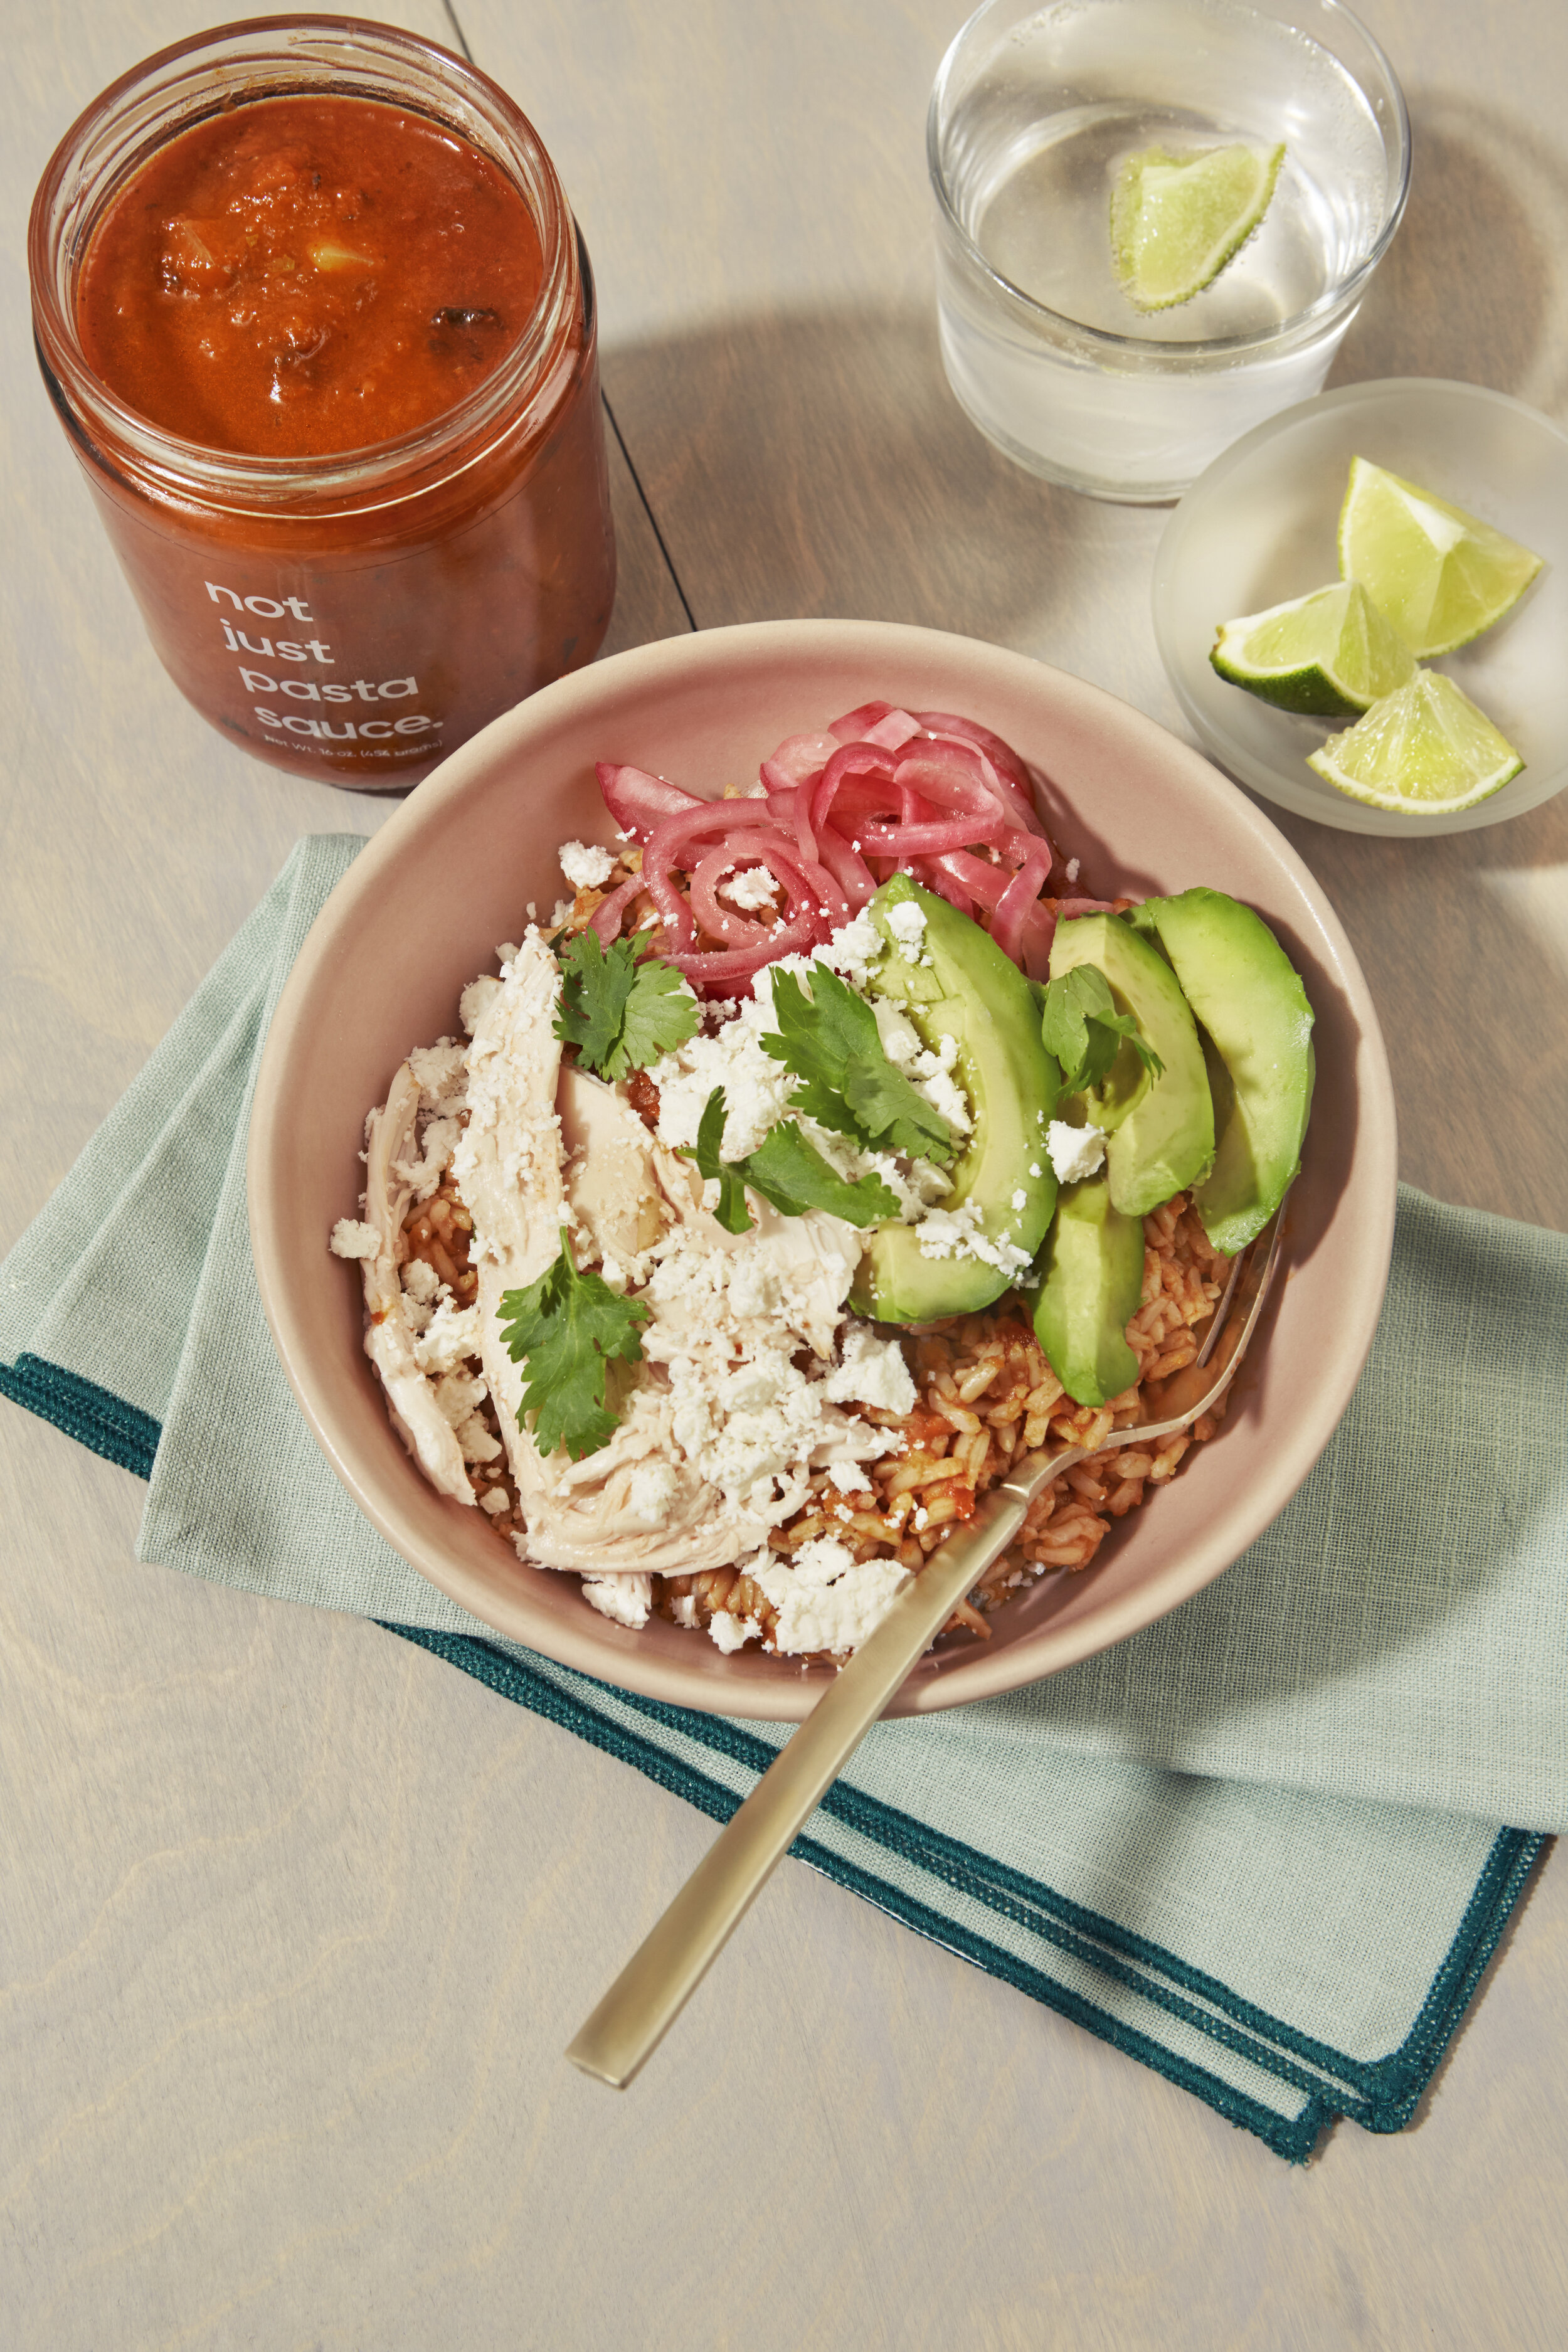 Chipotle Chicken Burrito Bowls using Not Just sauce! | Didn't I Just Feed You [sponsored]